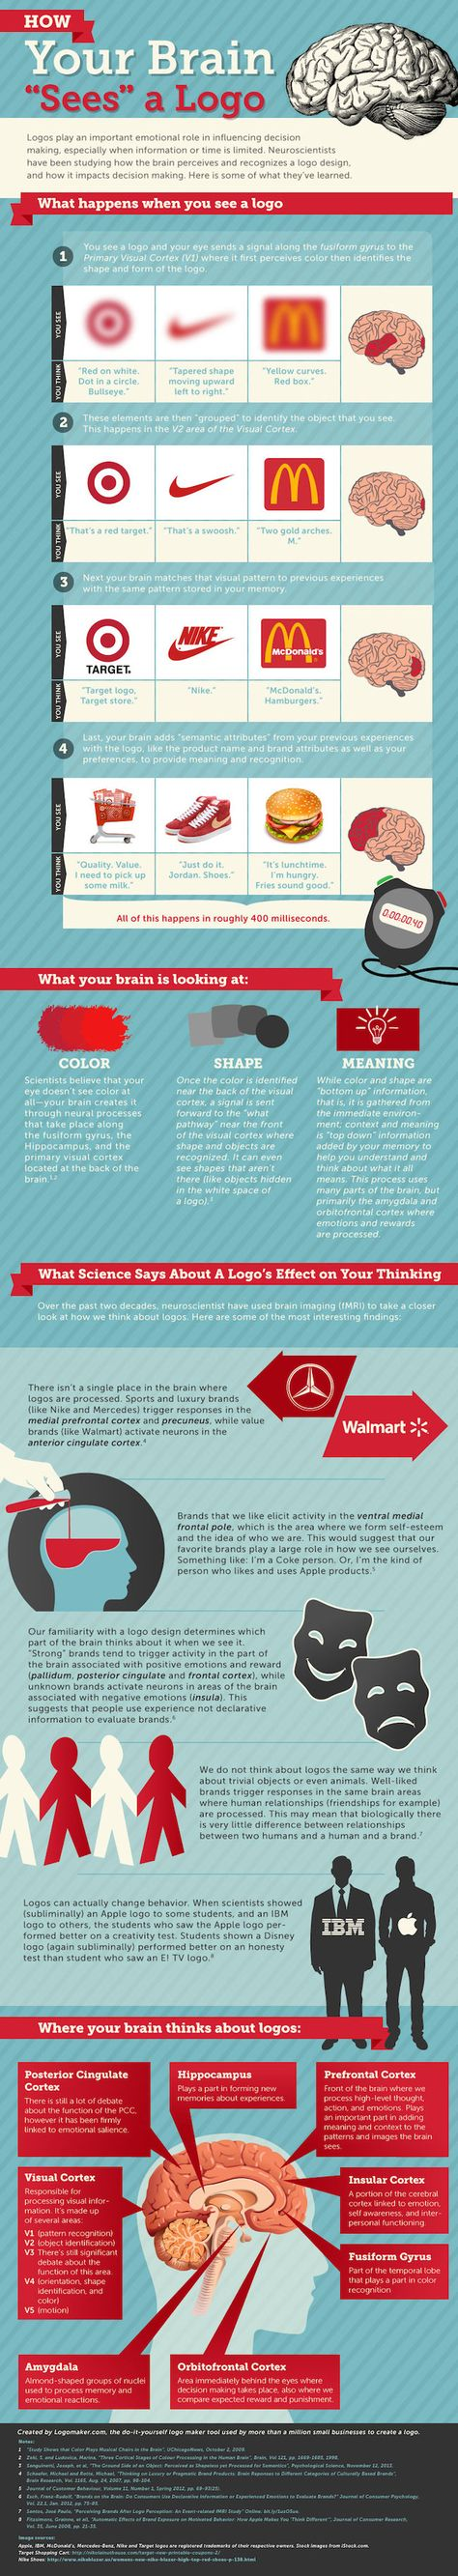 Infographic: How Your Brain Sees A Logo